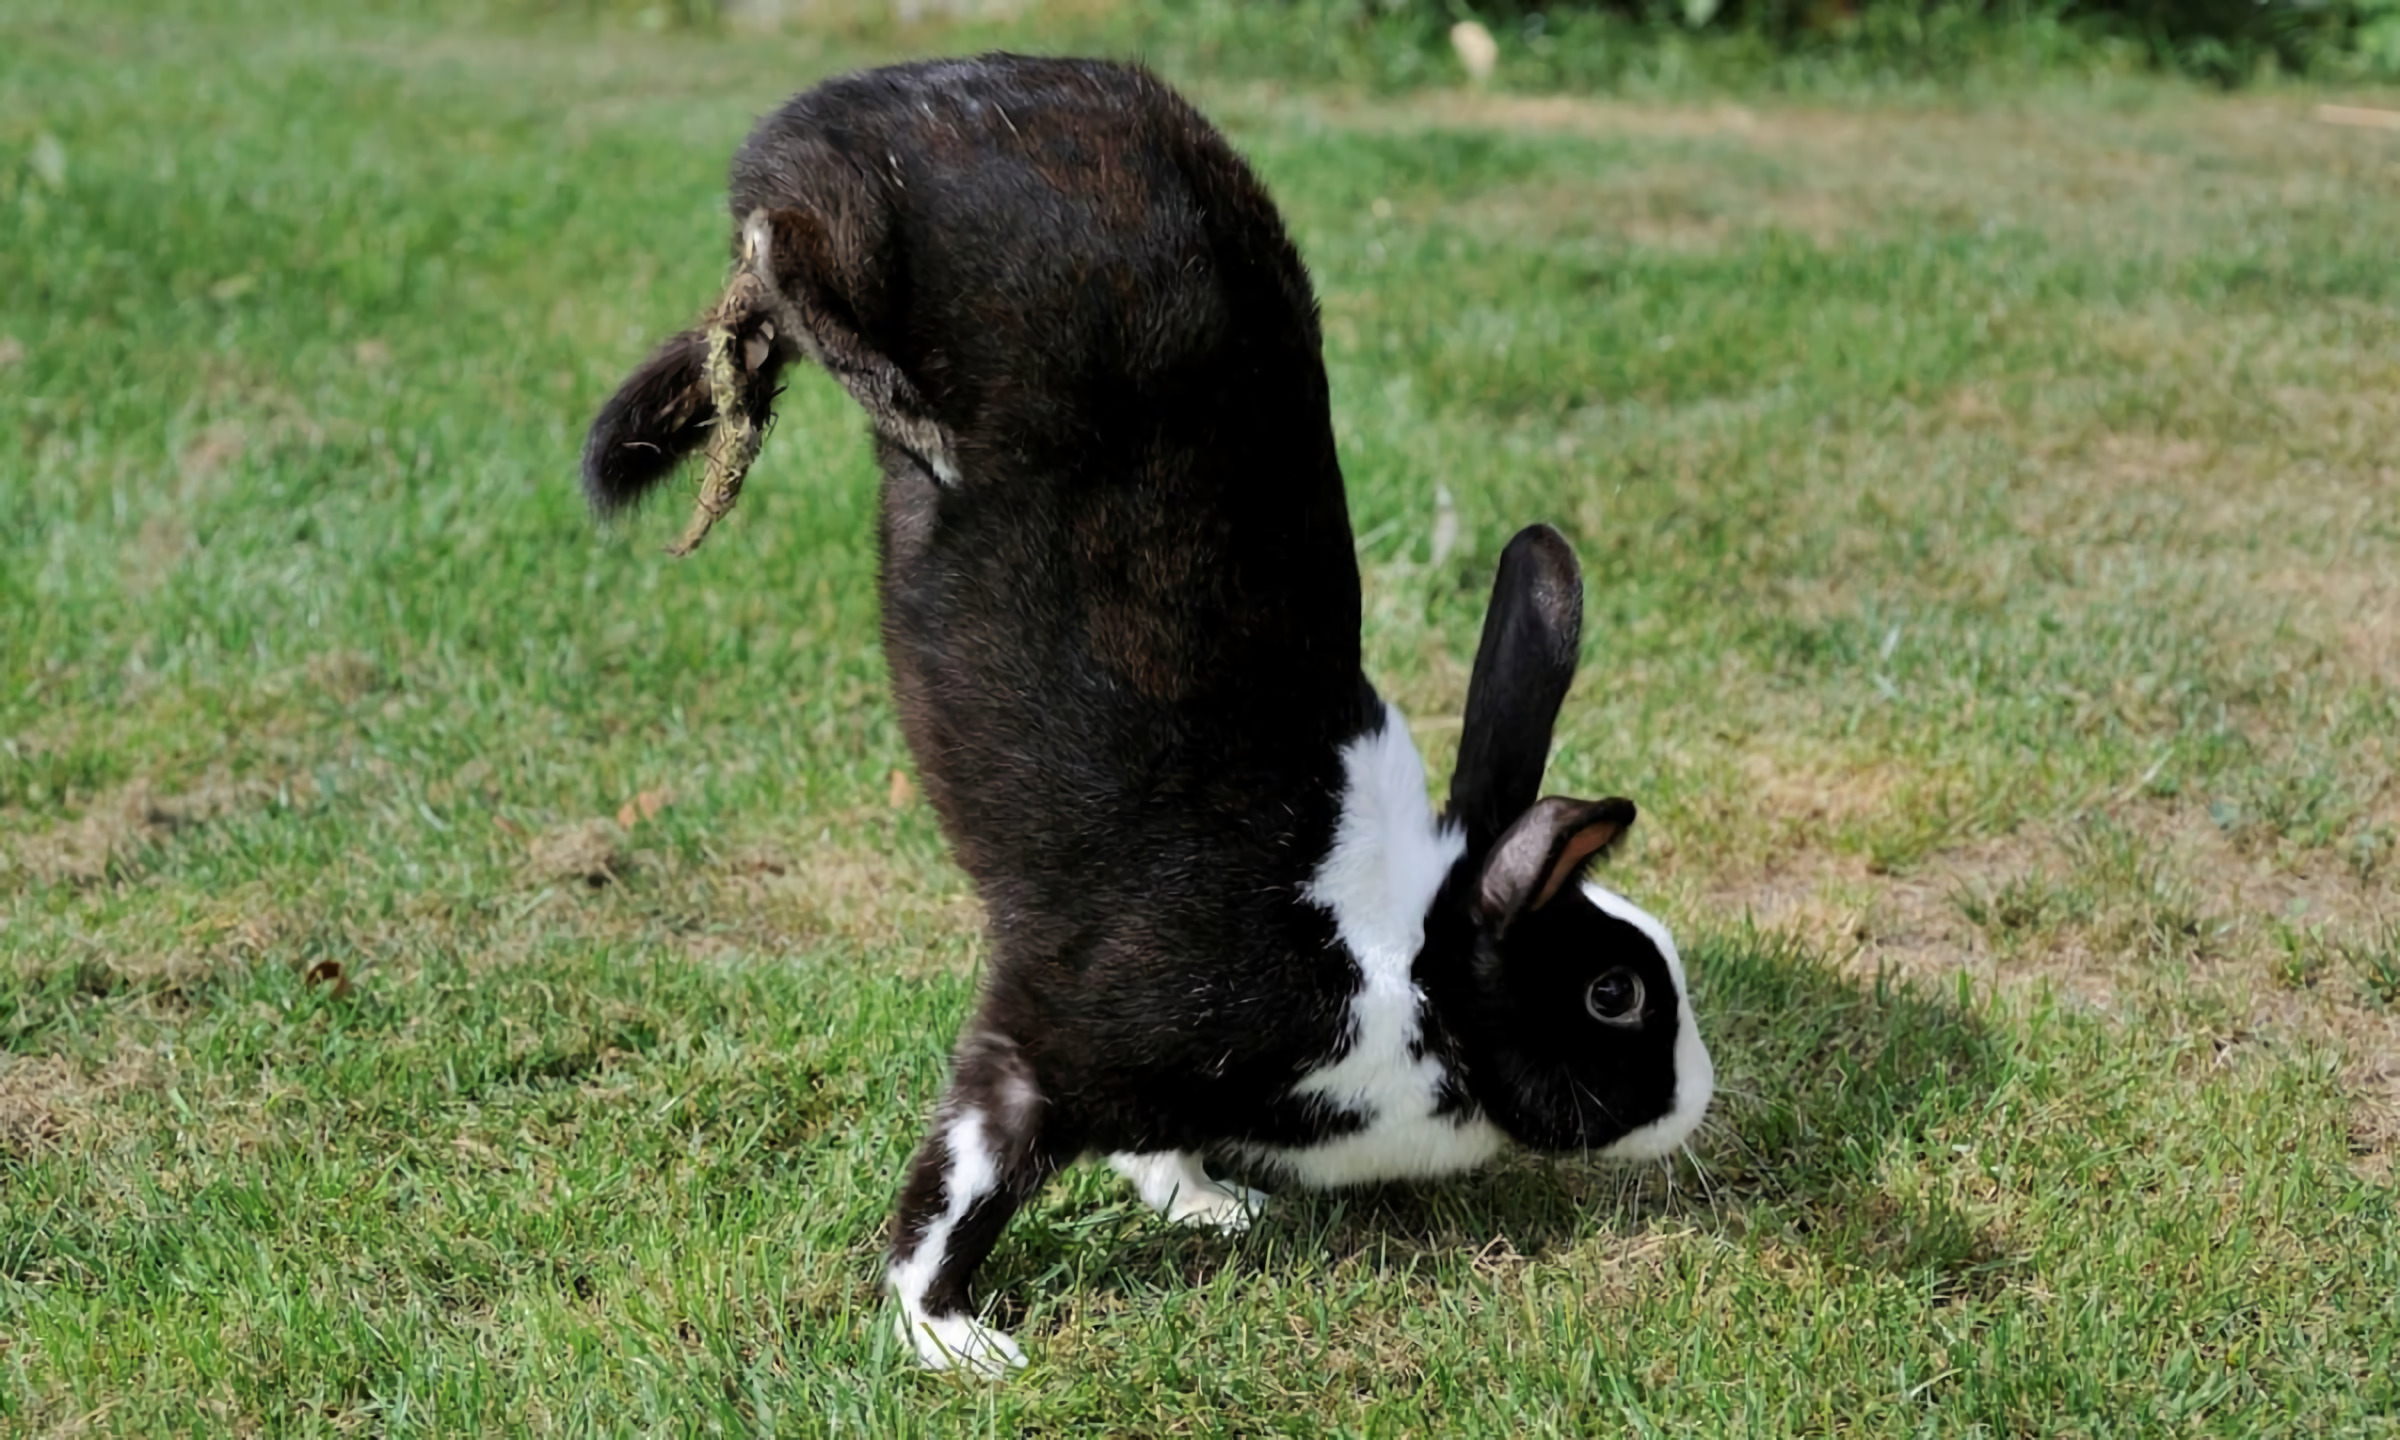 Rabbits that walk on their front legs look like circus acrobats.